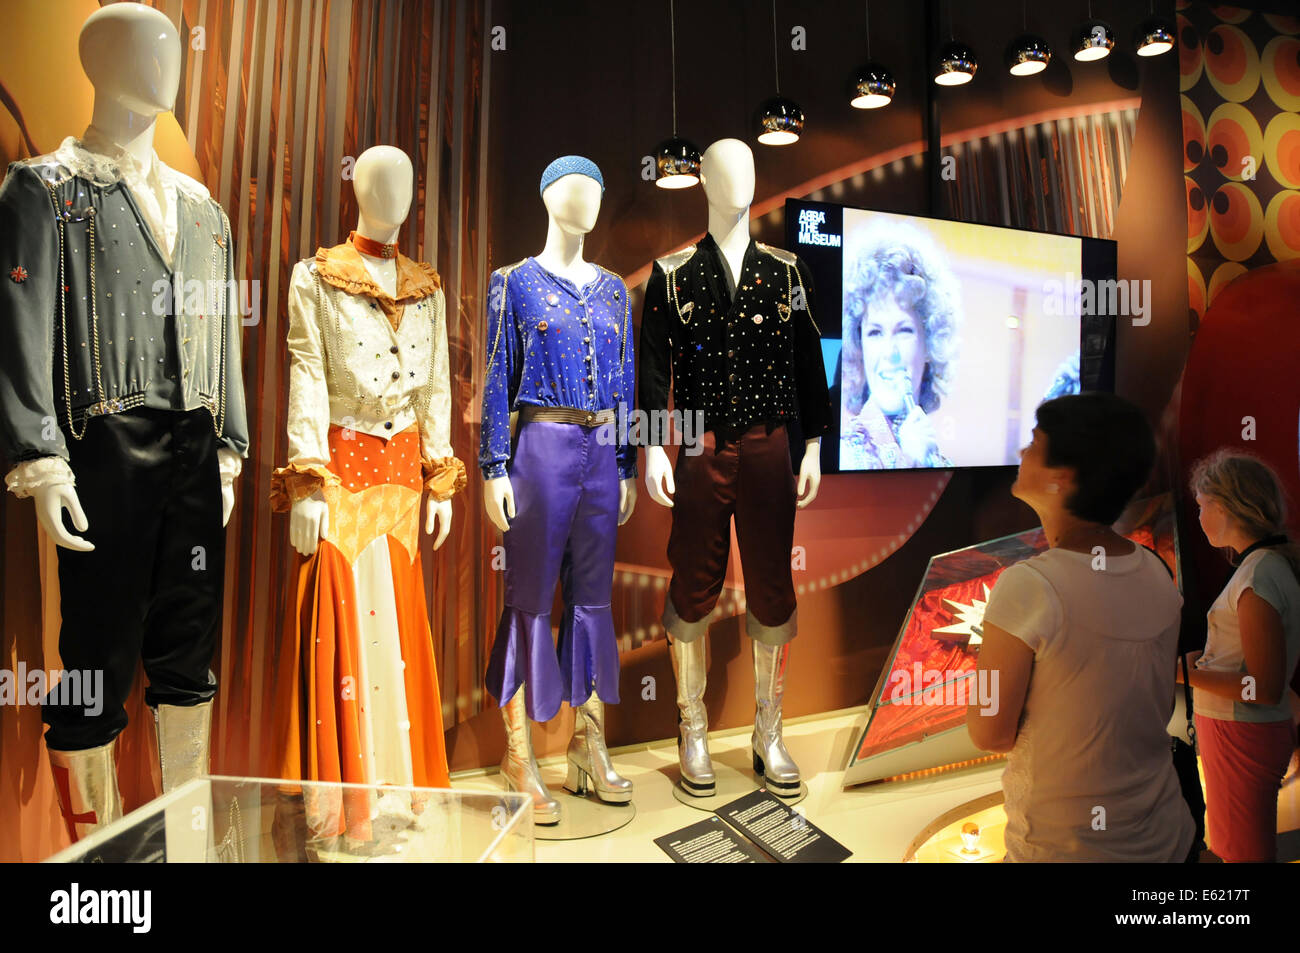 ABBA The Museum is an interactive exhibition about the pop-group ABBA that opened in Stockholm, Sweden in May 2013. - Stock Image